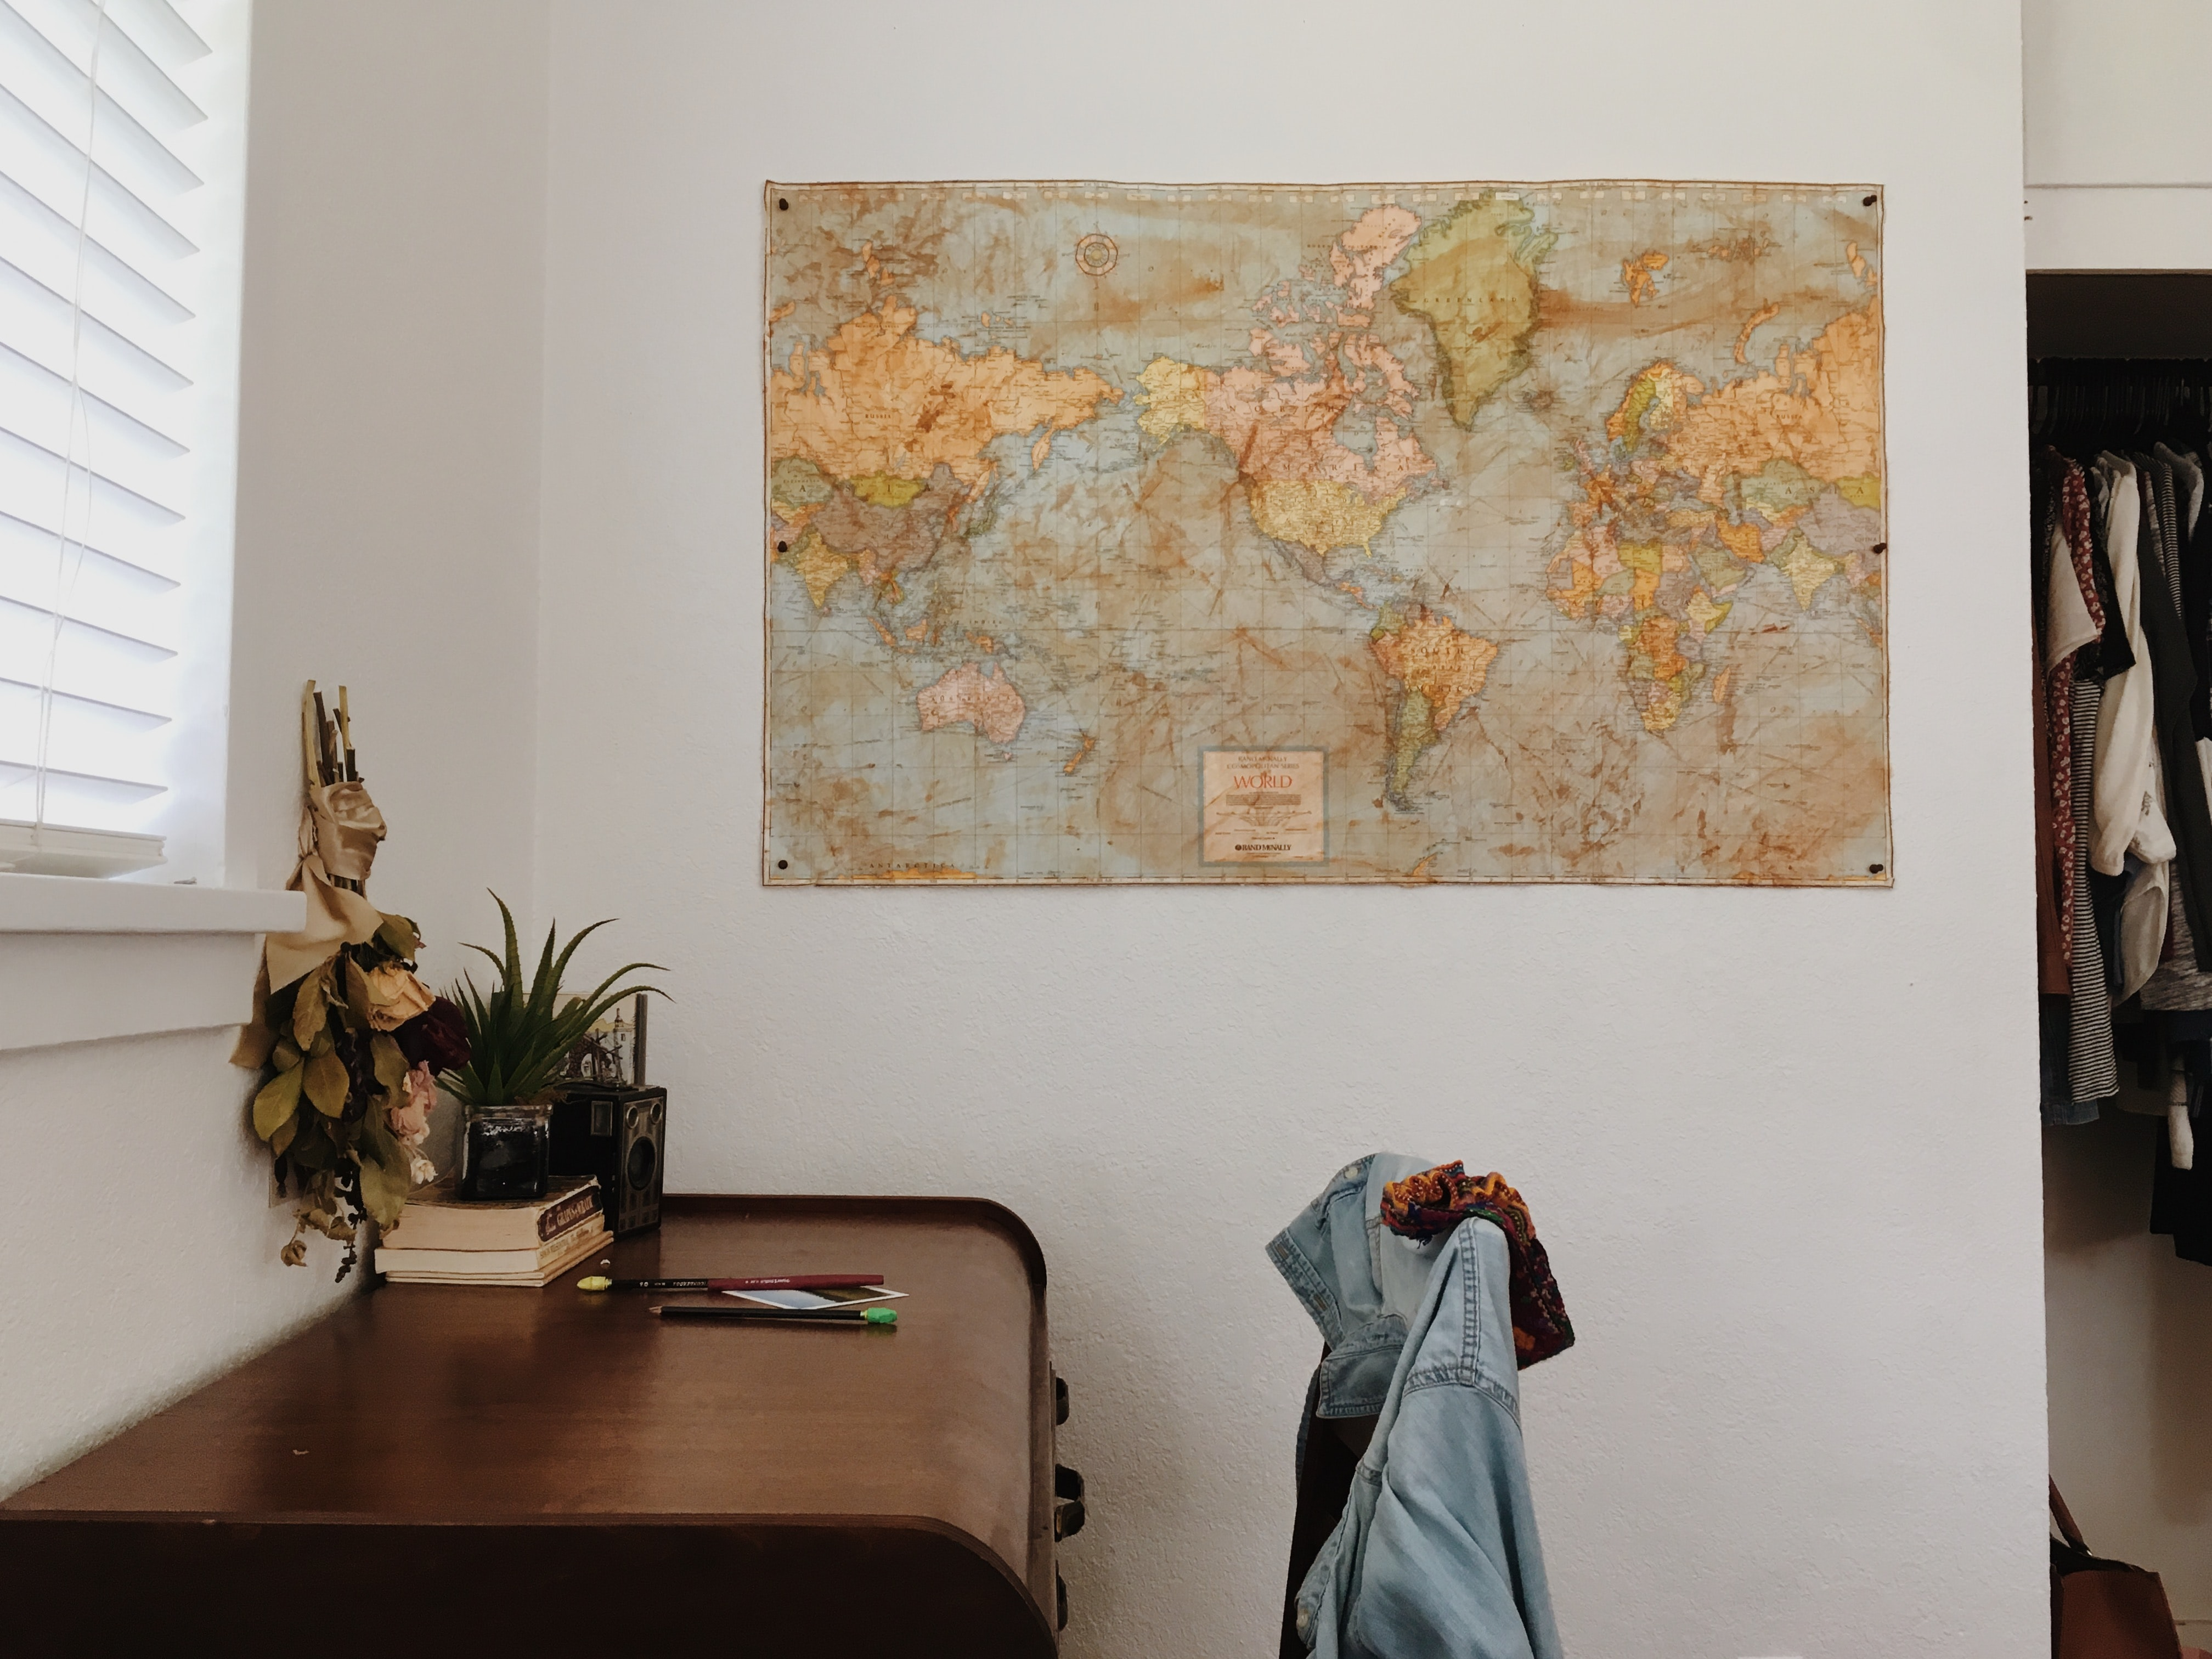 world map placing on wall near brown wooden desk